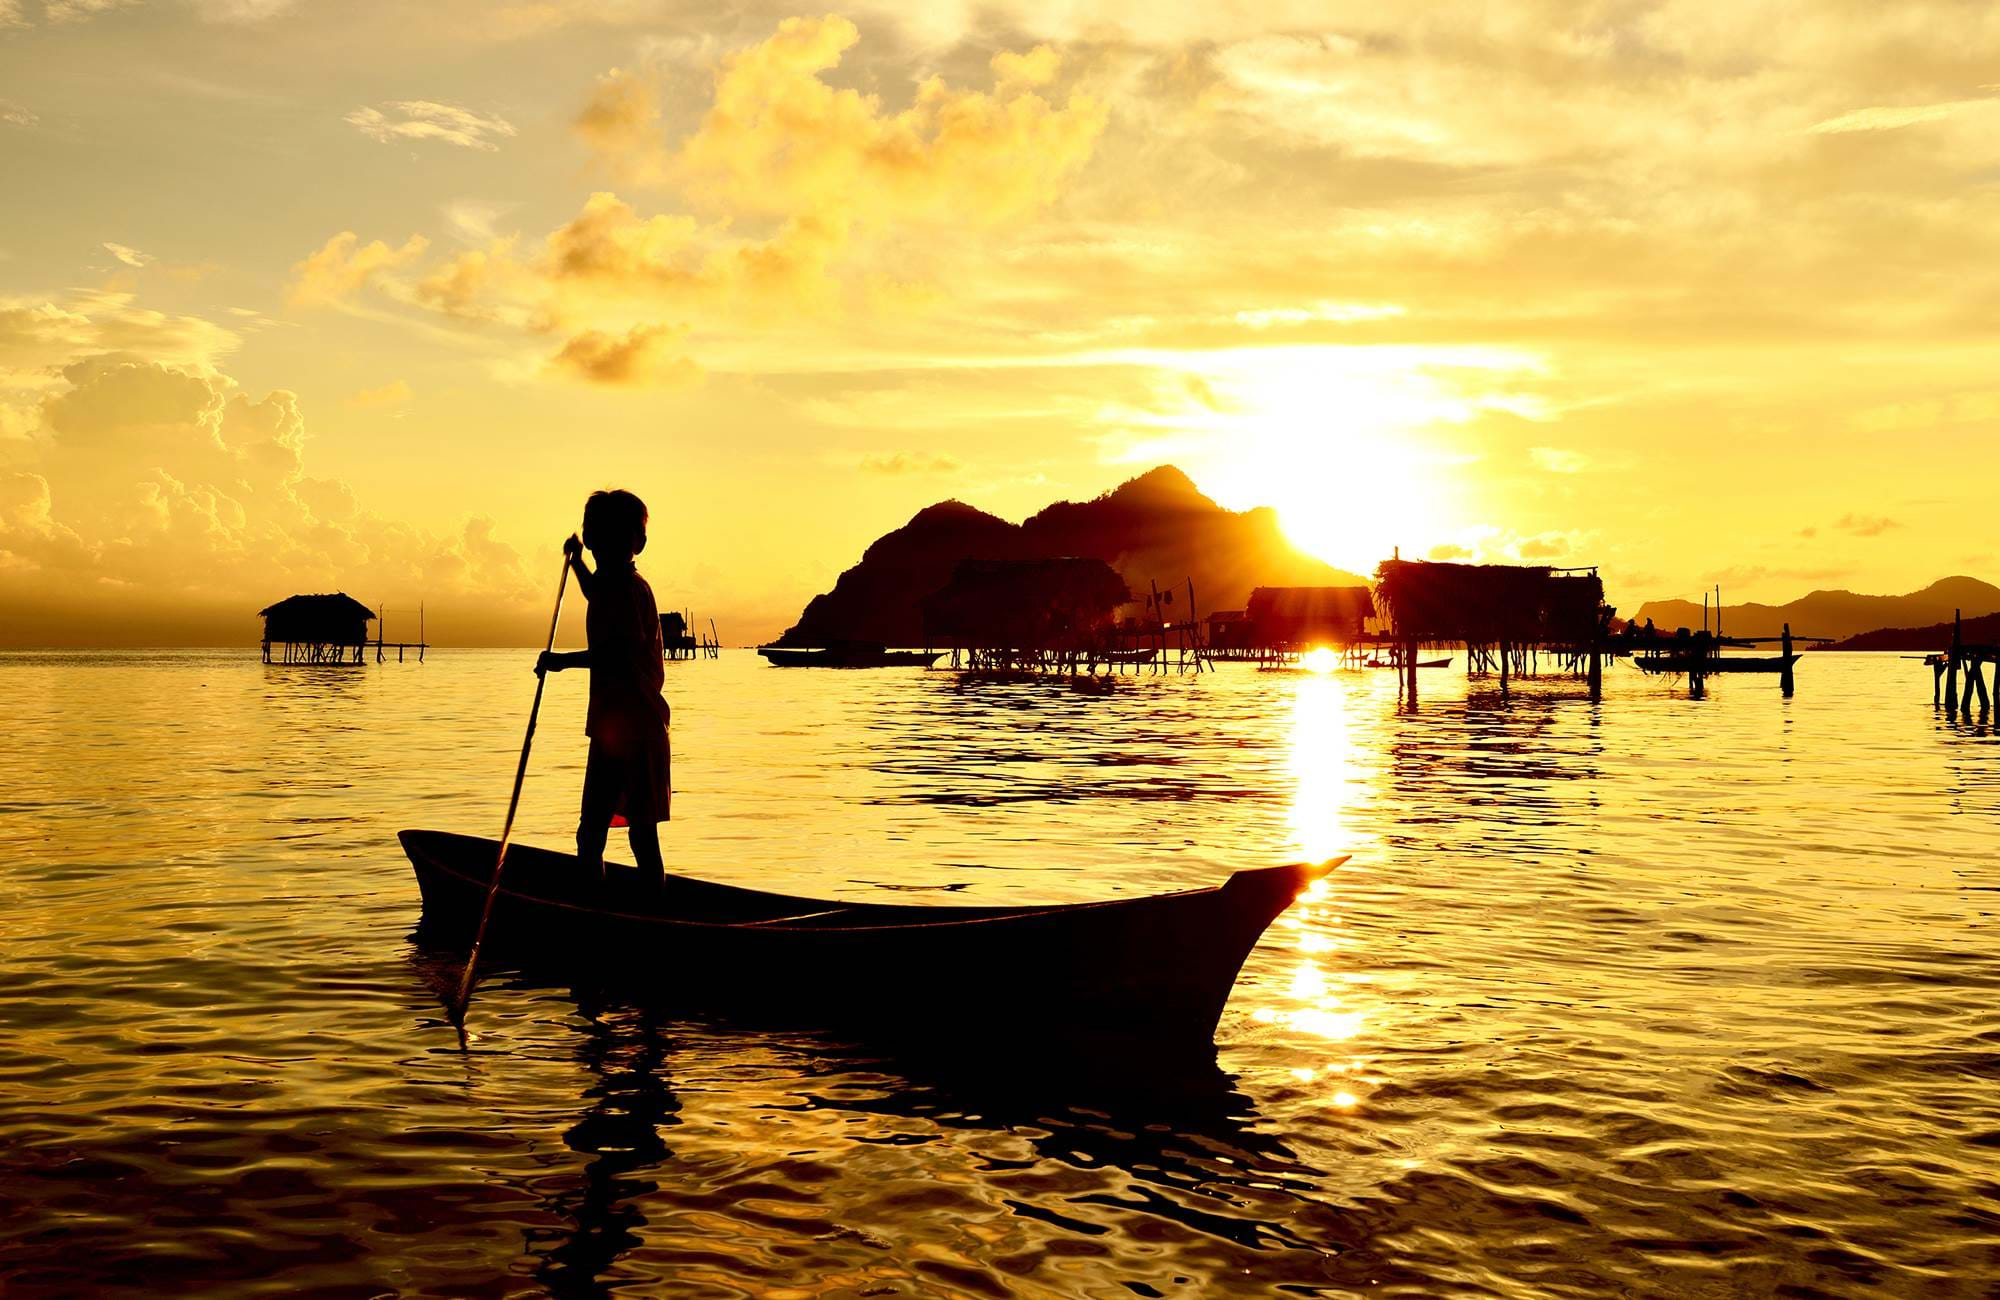 borneo-sabah-semporna-maiga-island-kid-paddling-on-a-boat-near-bajau-laut-village-cover